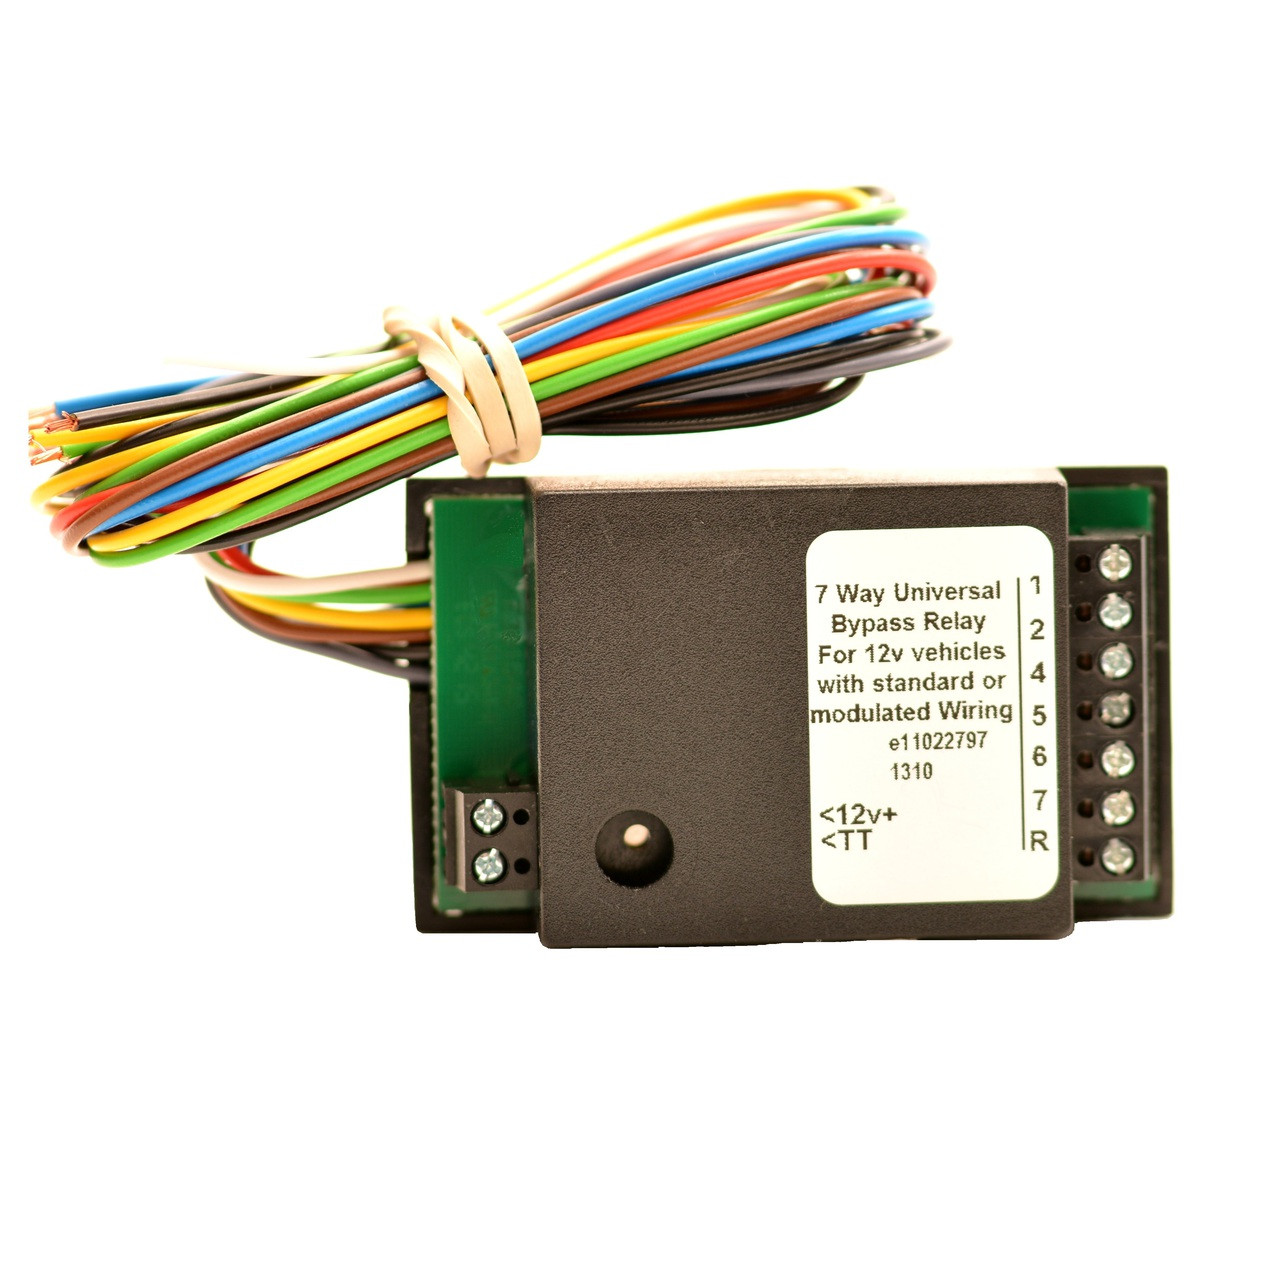 12v Smart Bypass Relay Multiplex Canbus The 8way Board Image 1